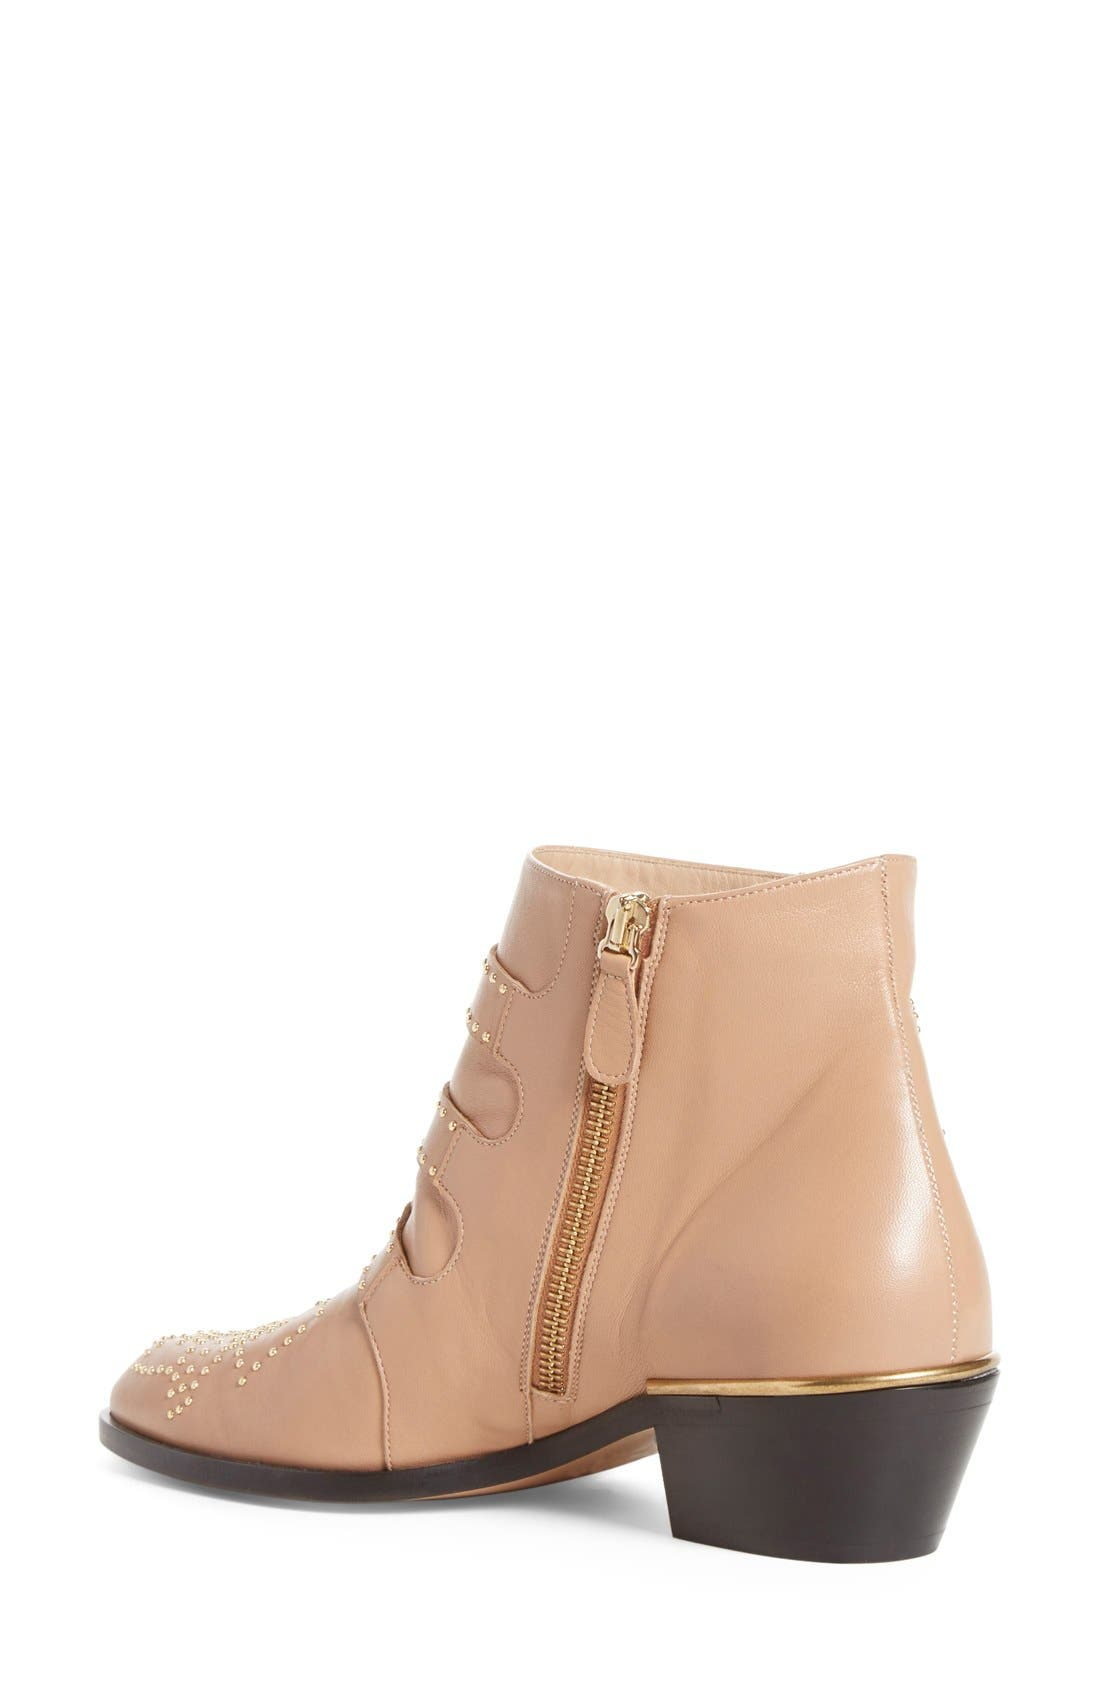 Susanna Stud Buckle Bootie,                             Alternate thumbnail 2, color,                             Beige Gold Leather